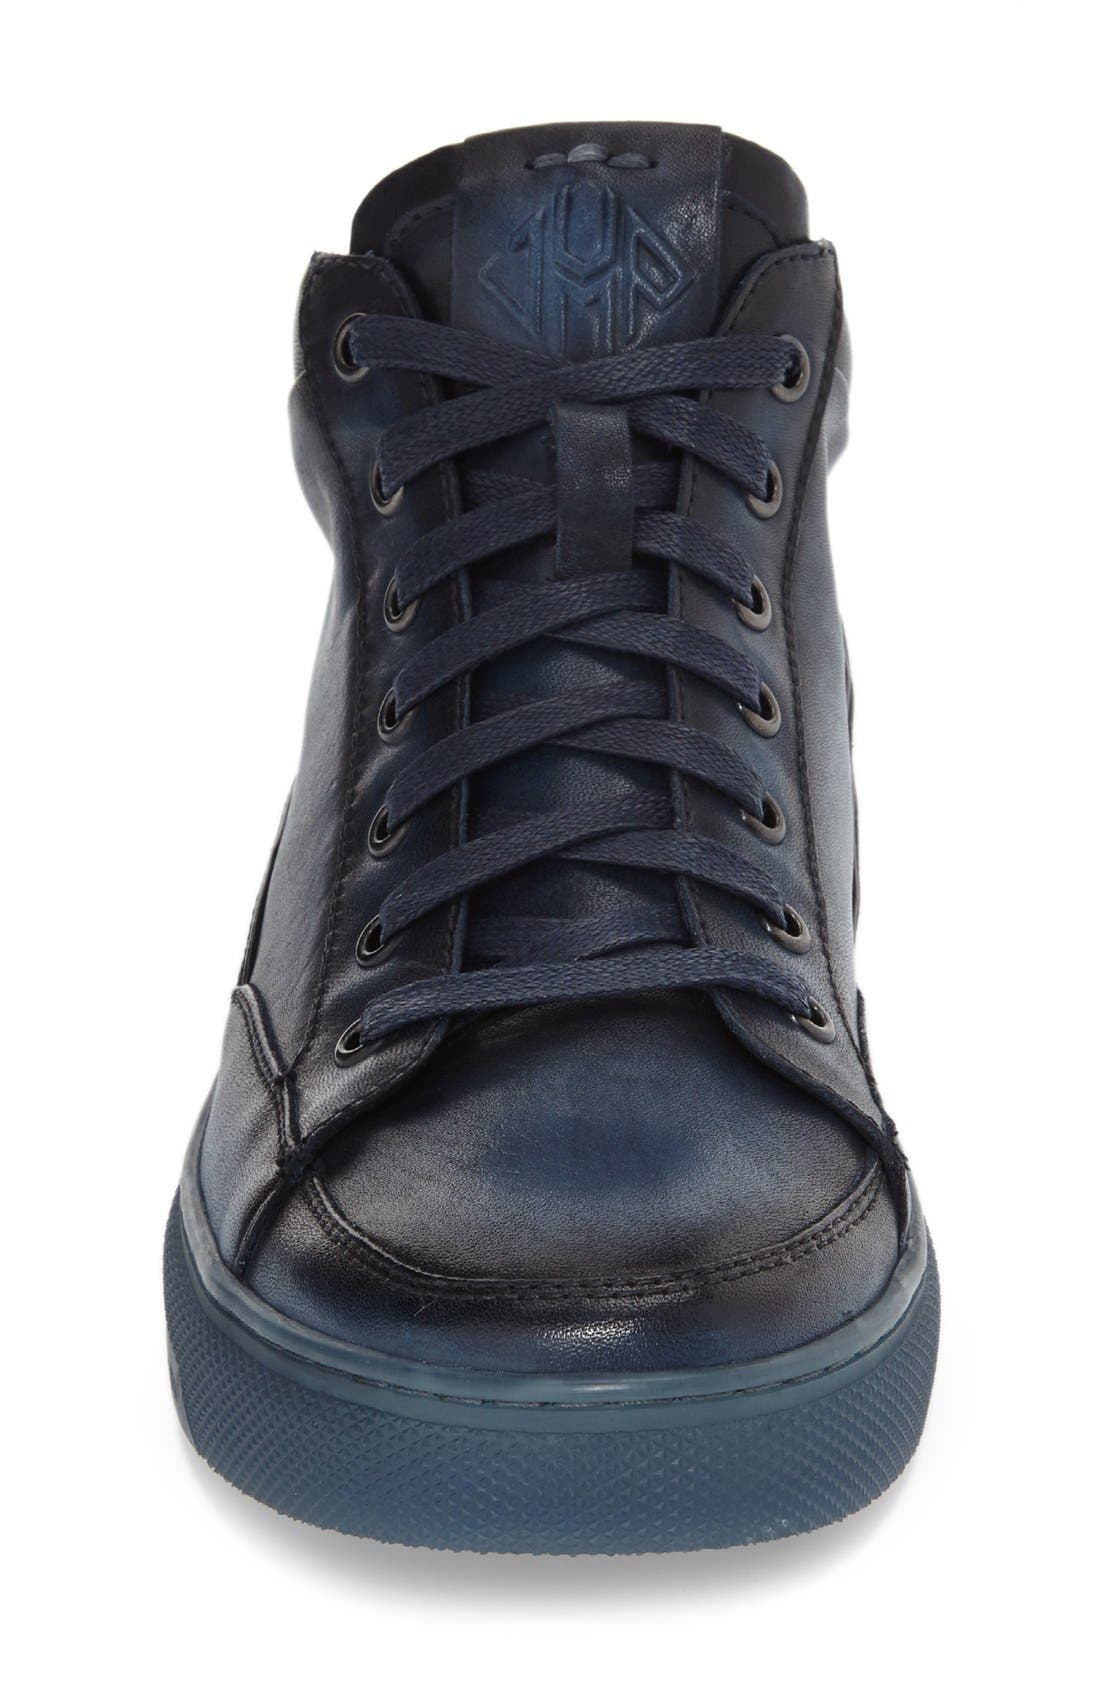 'Strickland' Sneaker,                             Alternate thumbnail 3, color,                             Navy Leather